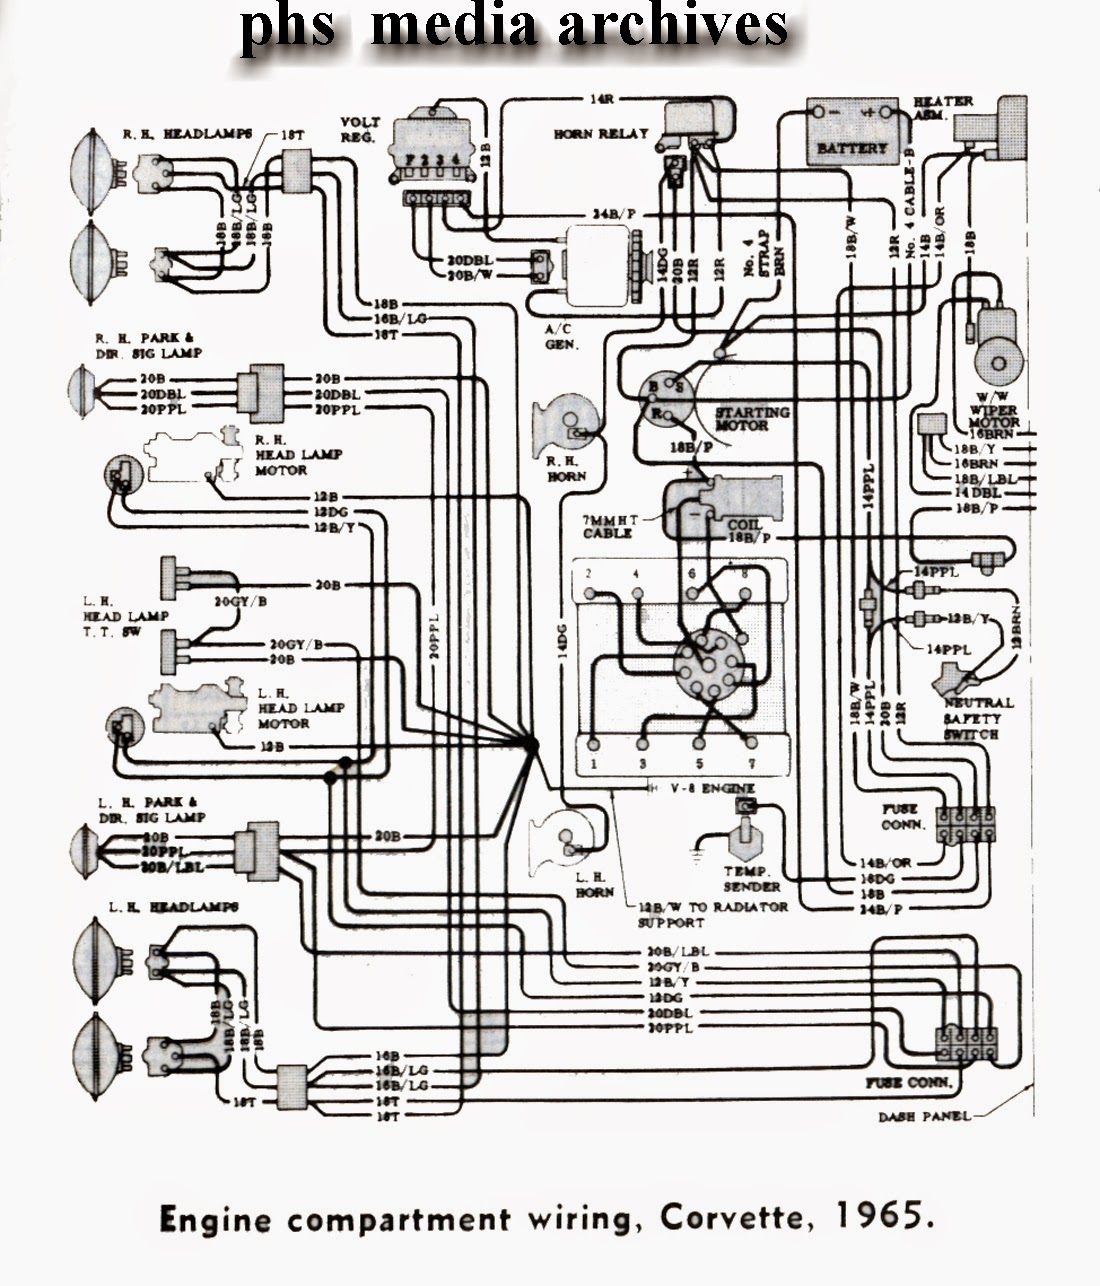 Fuse Box Wiring Diagram 76 Corvette Opinions About 1977 Camaro 1976 Pdf Schematics Diagrams U2022 Rh Parntesis Co Starter 1975